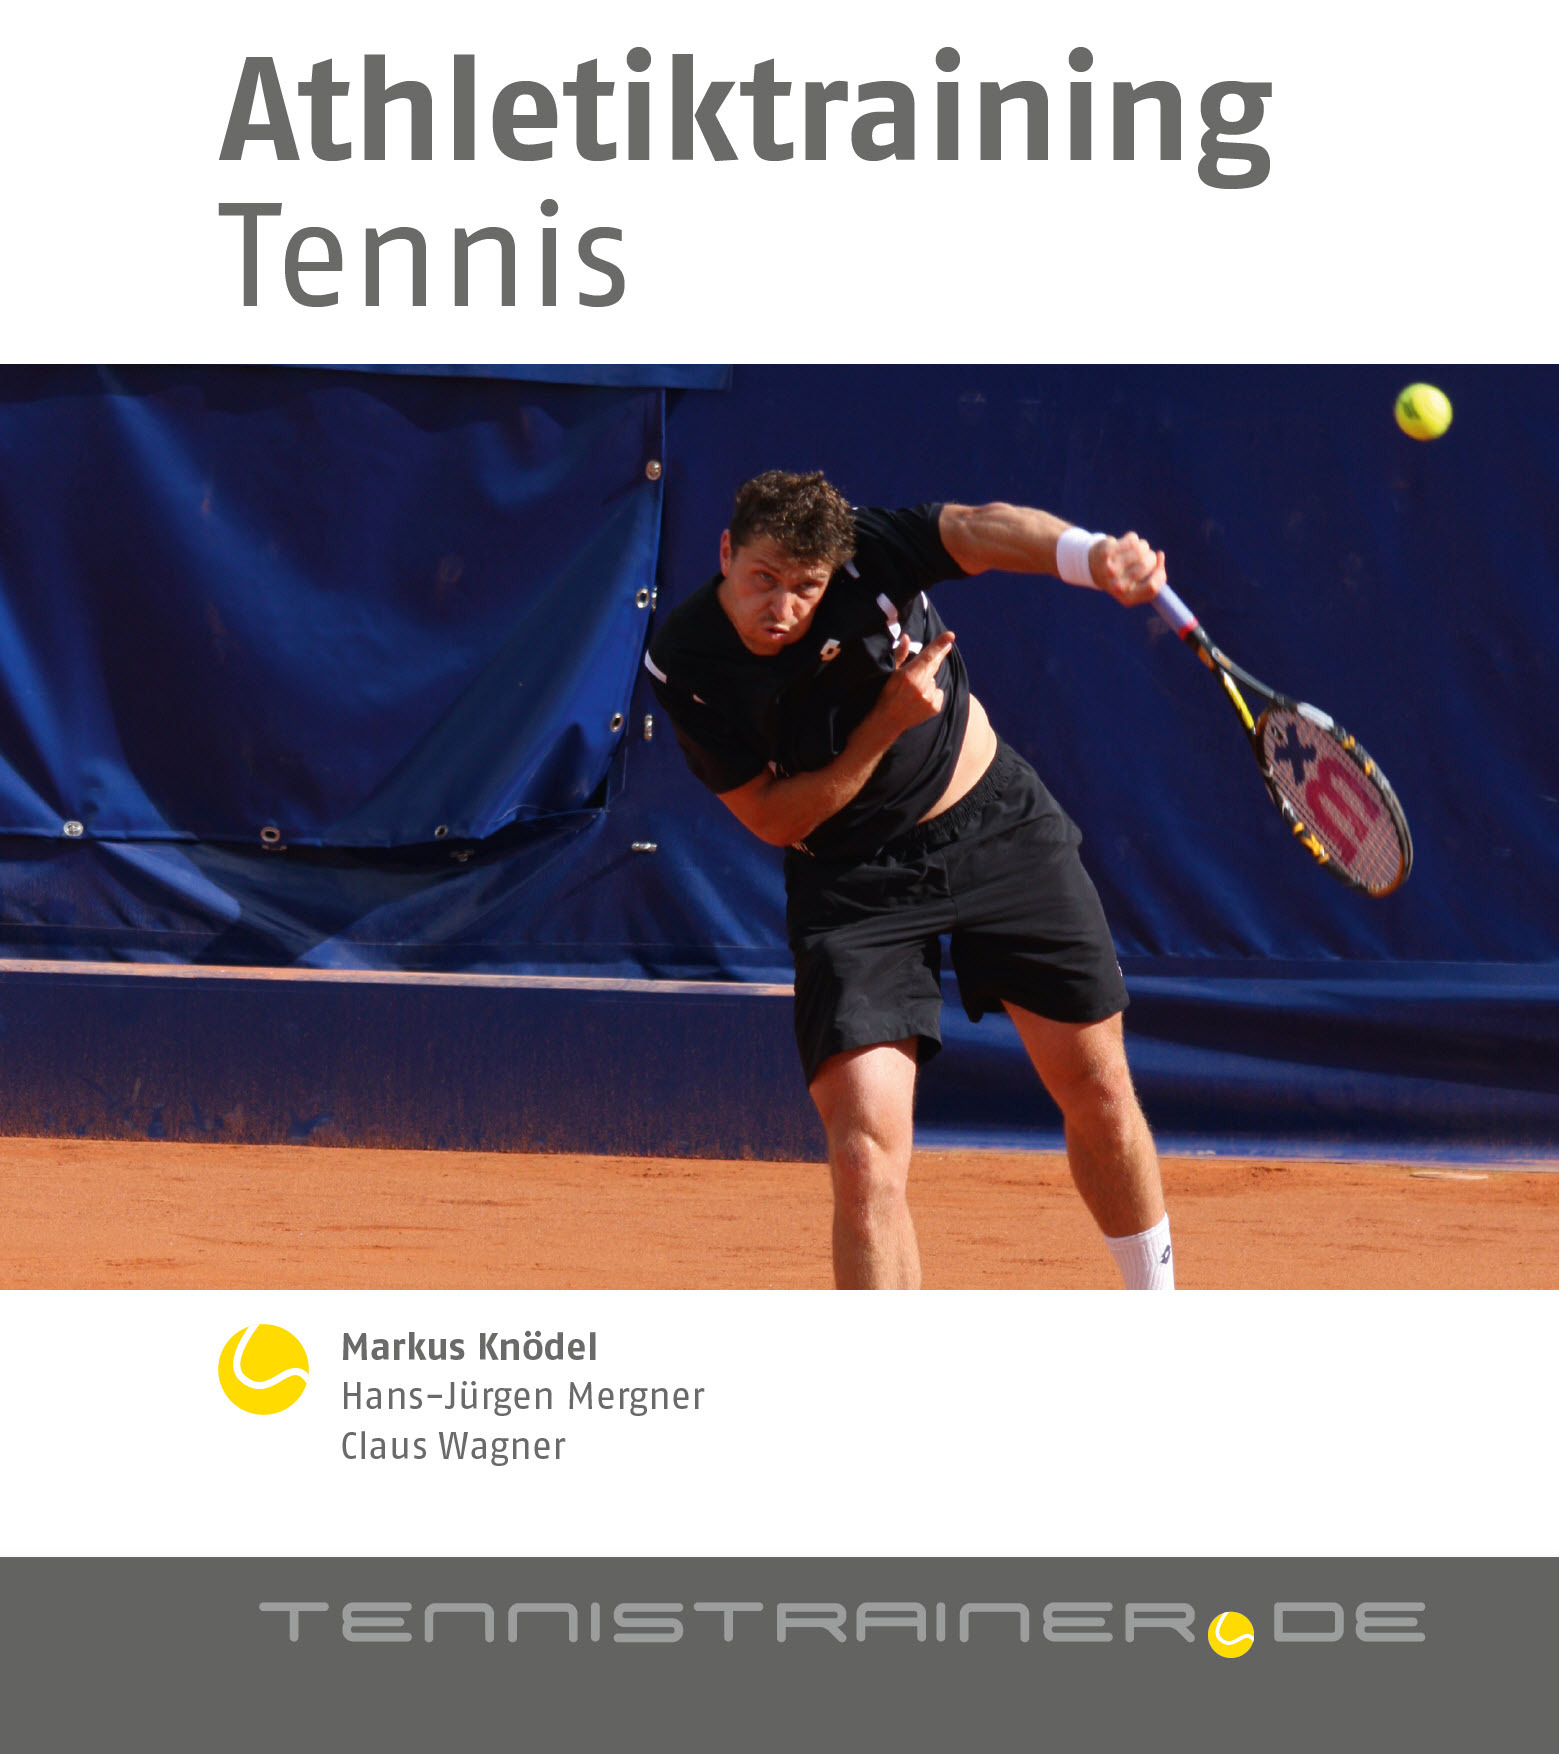 201807_Athletiktraining_Tennis_neu